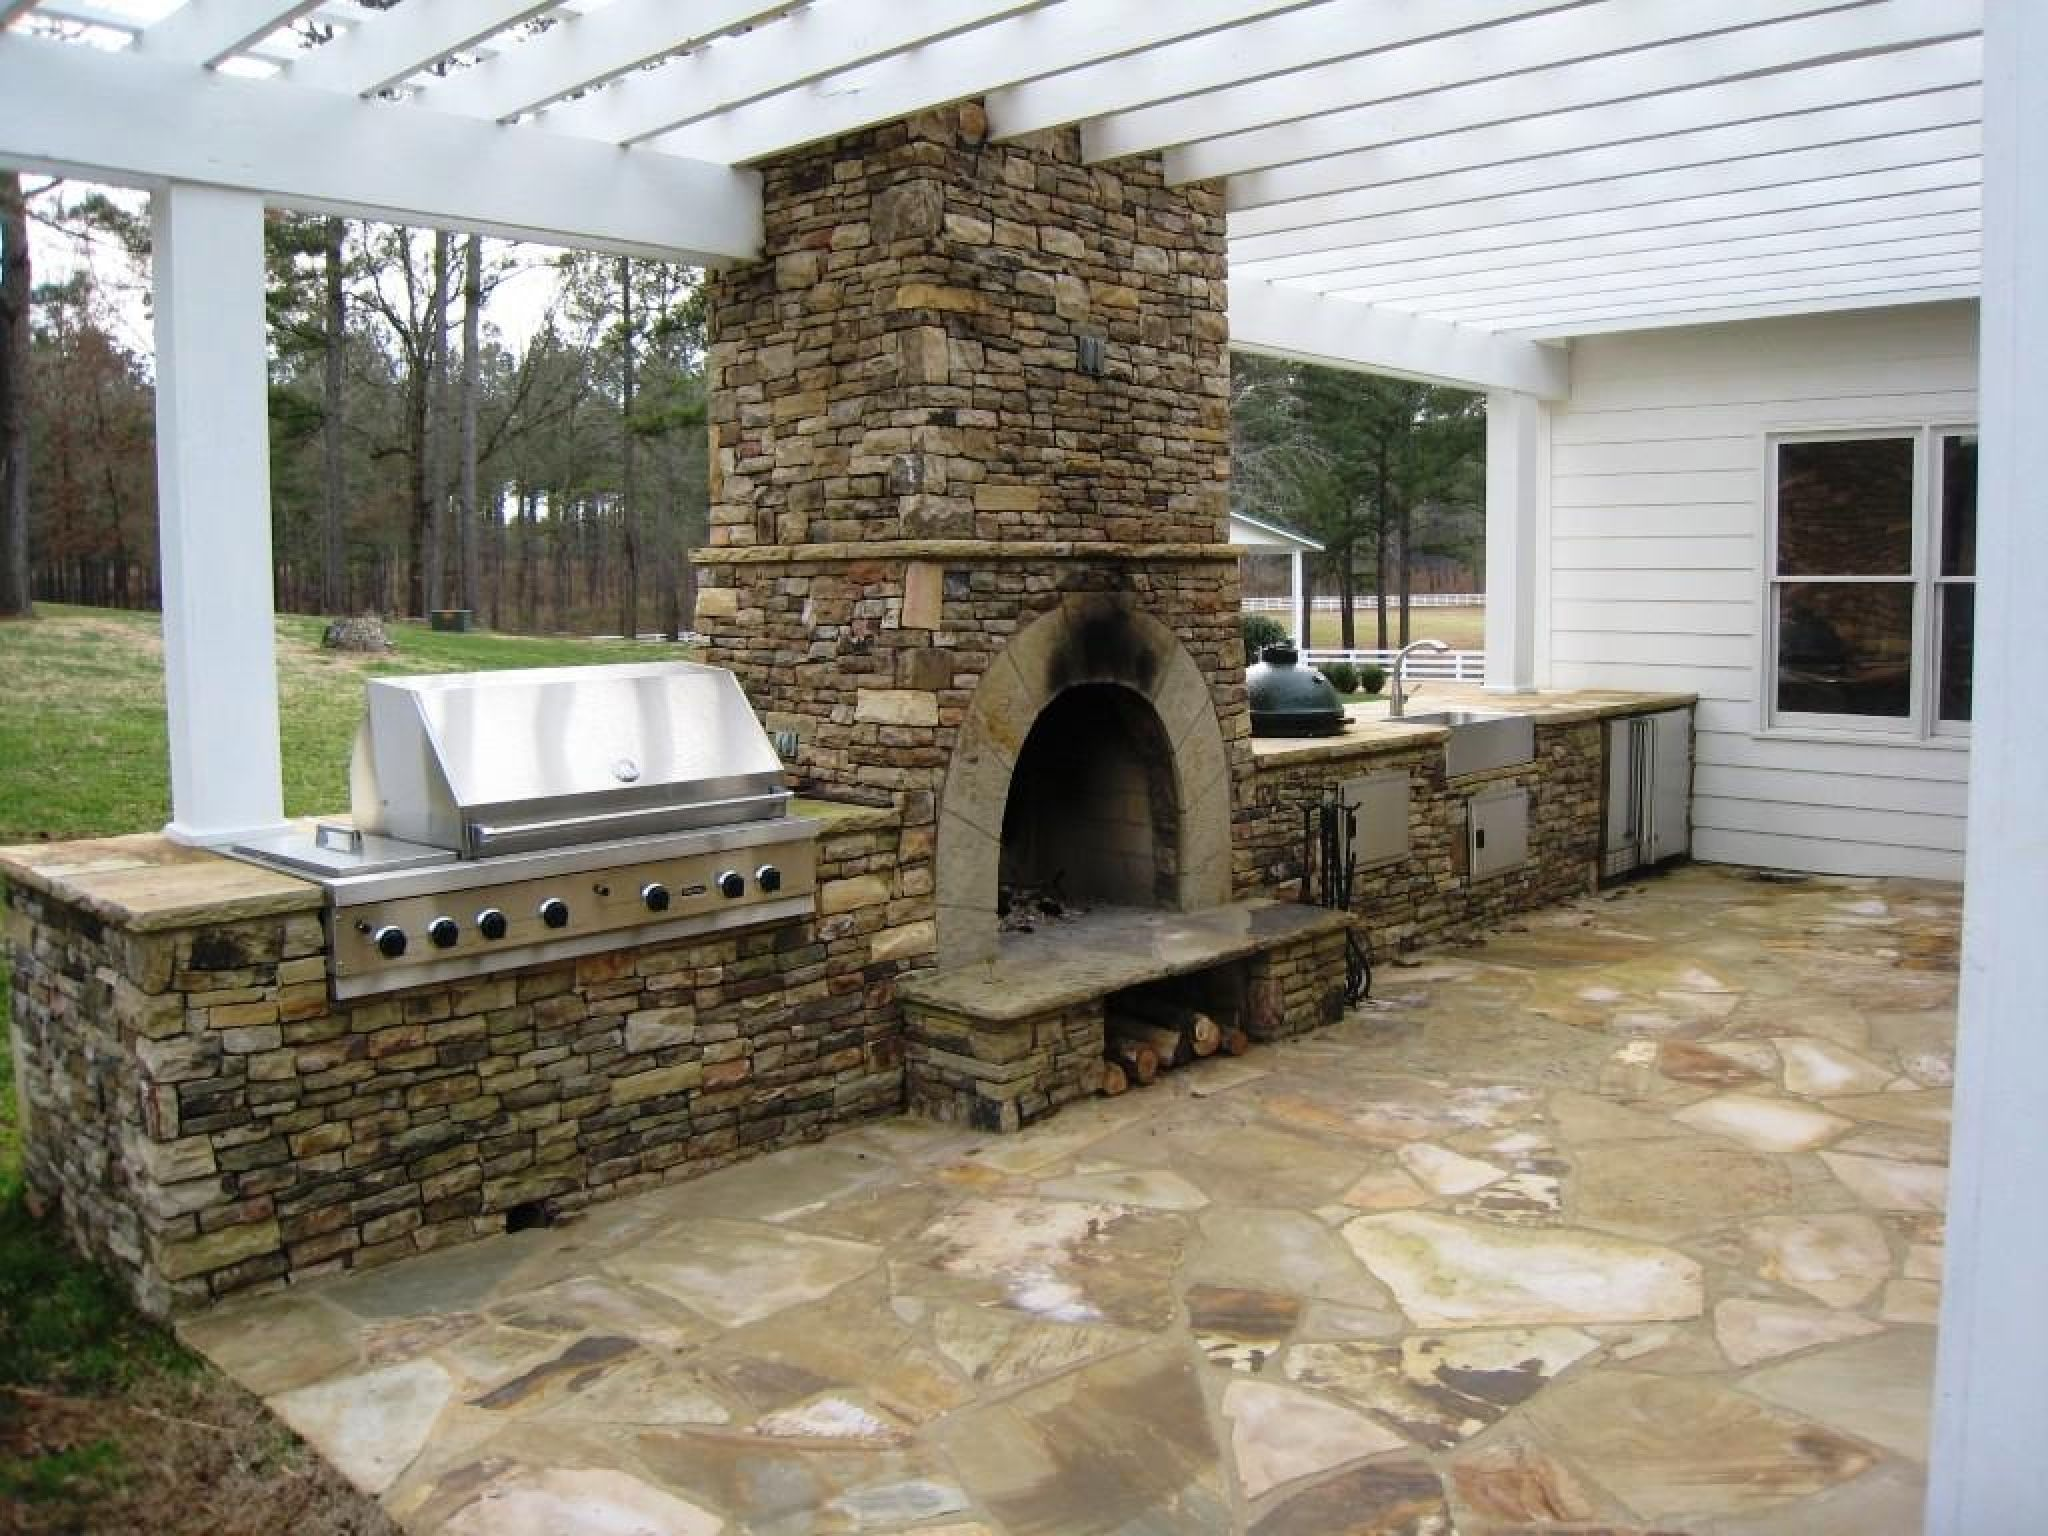 Outdoor Kitchen Designs With Pizza Oven Custom Plans For Outdoor Pizza Oven Fireplace  Interior Paint Colors Review